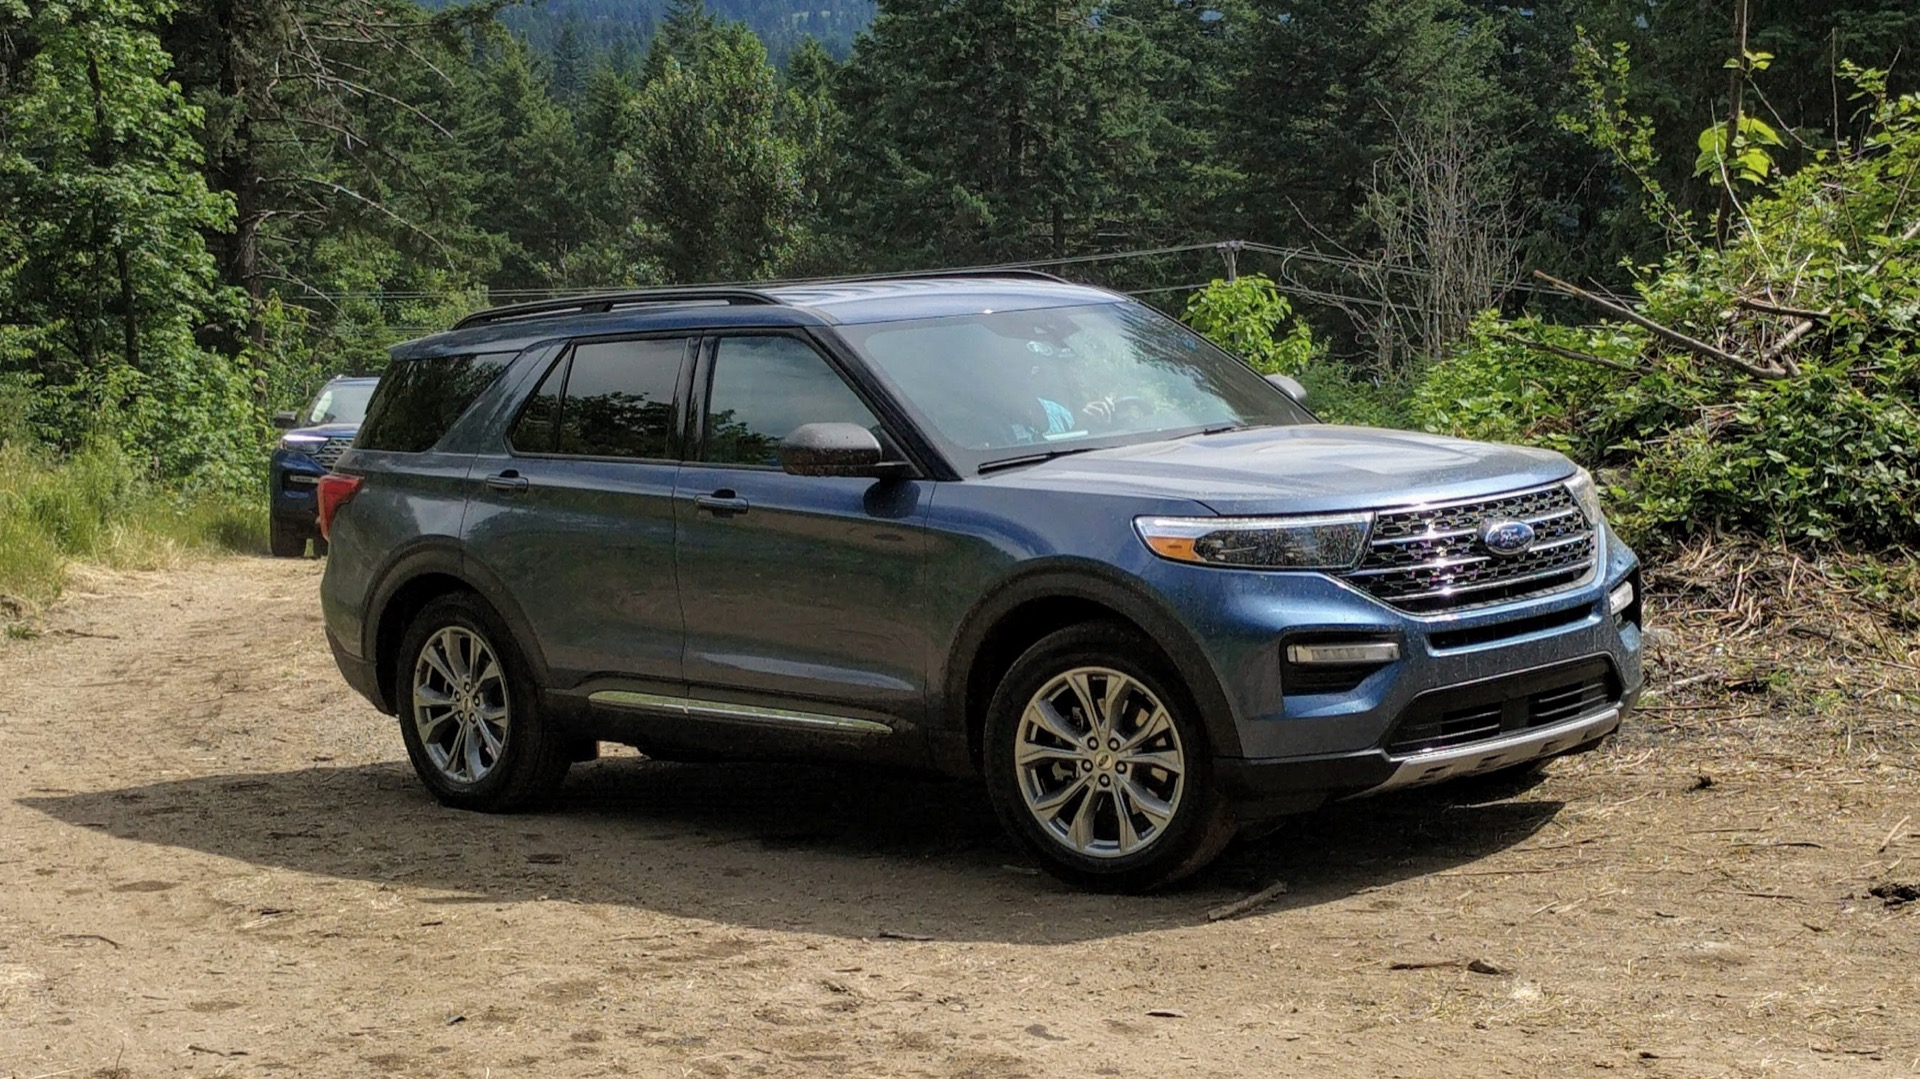 40 All New Ford Explorer 2020 Price Redesign and Review